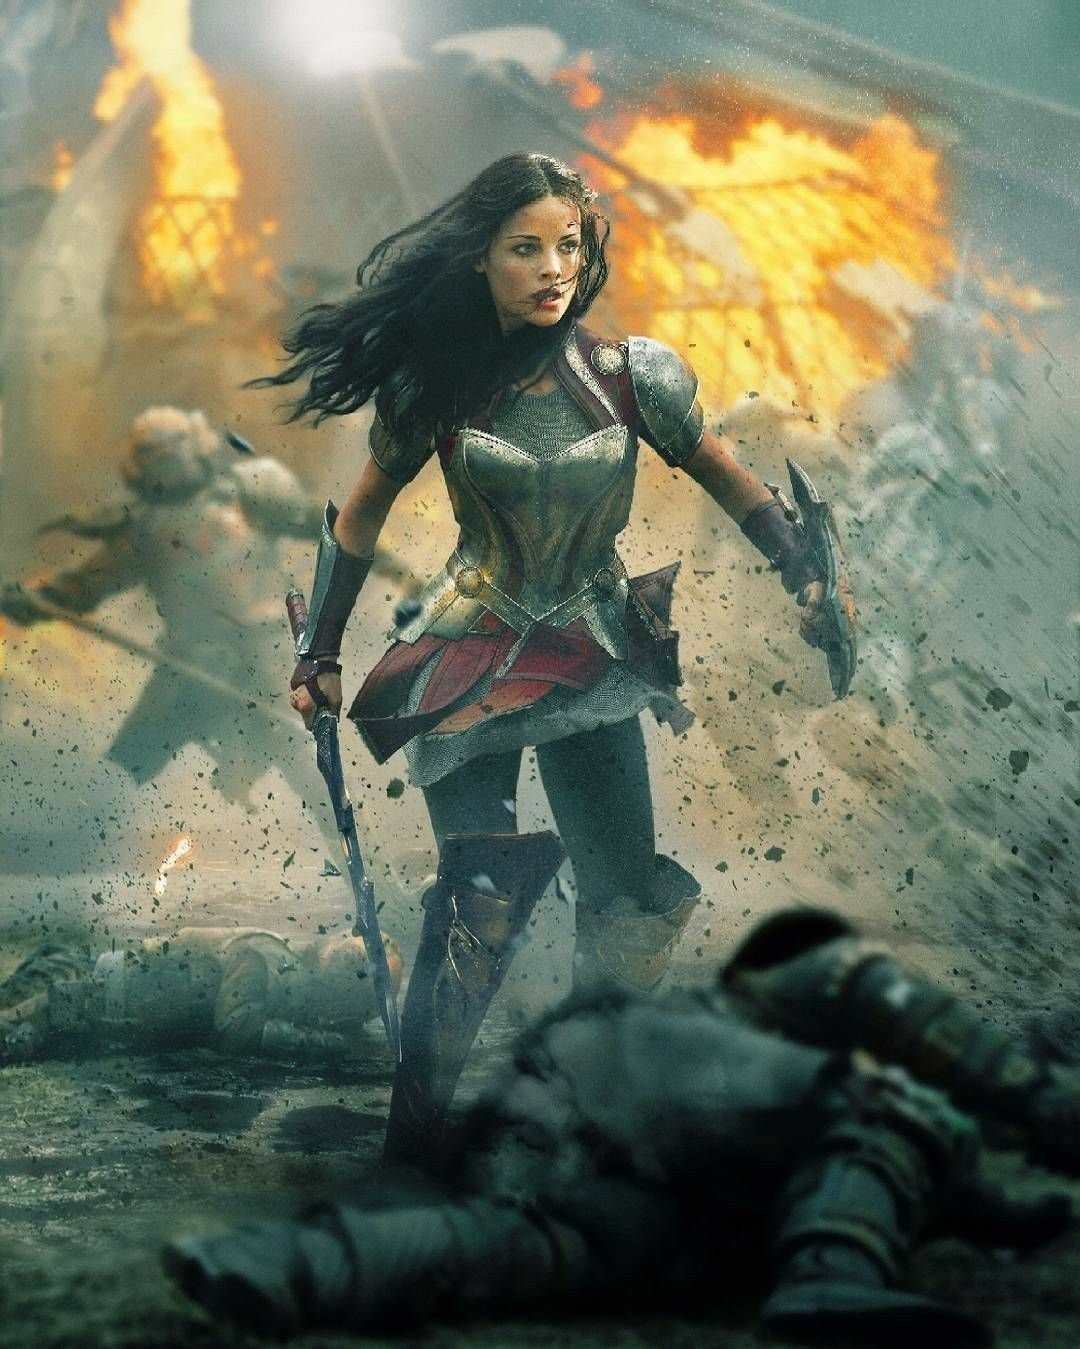 Lady Sif in Thor - The Dark World